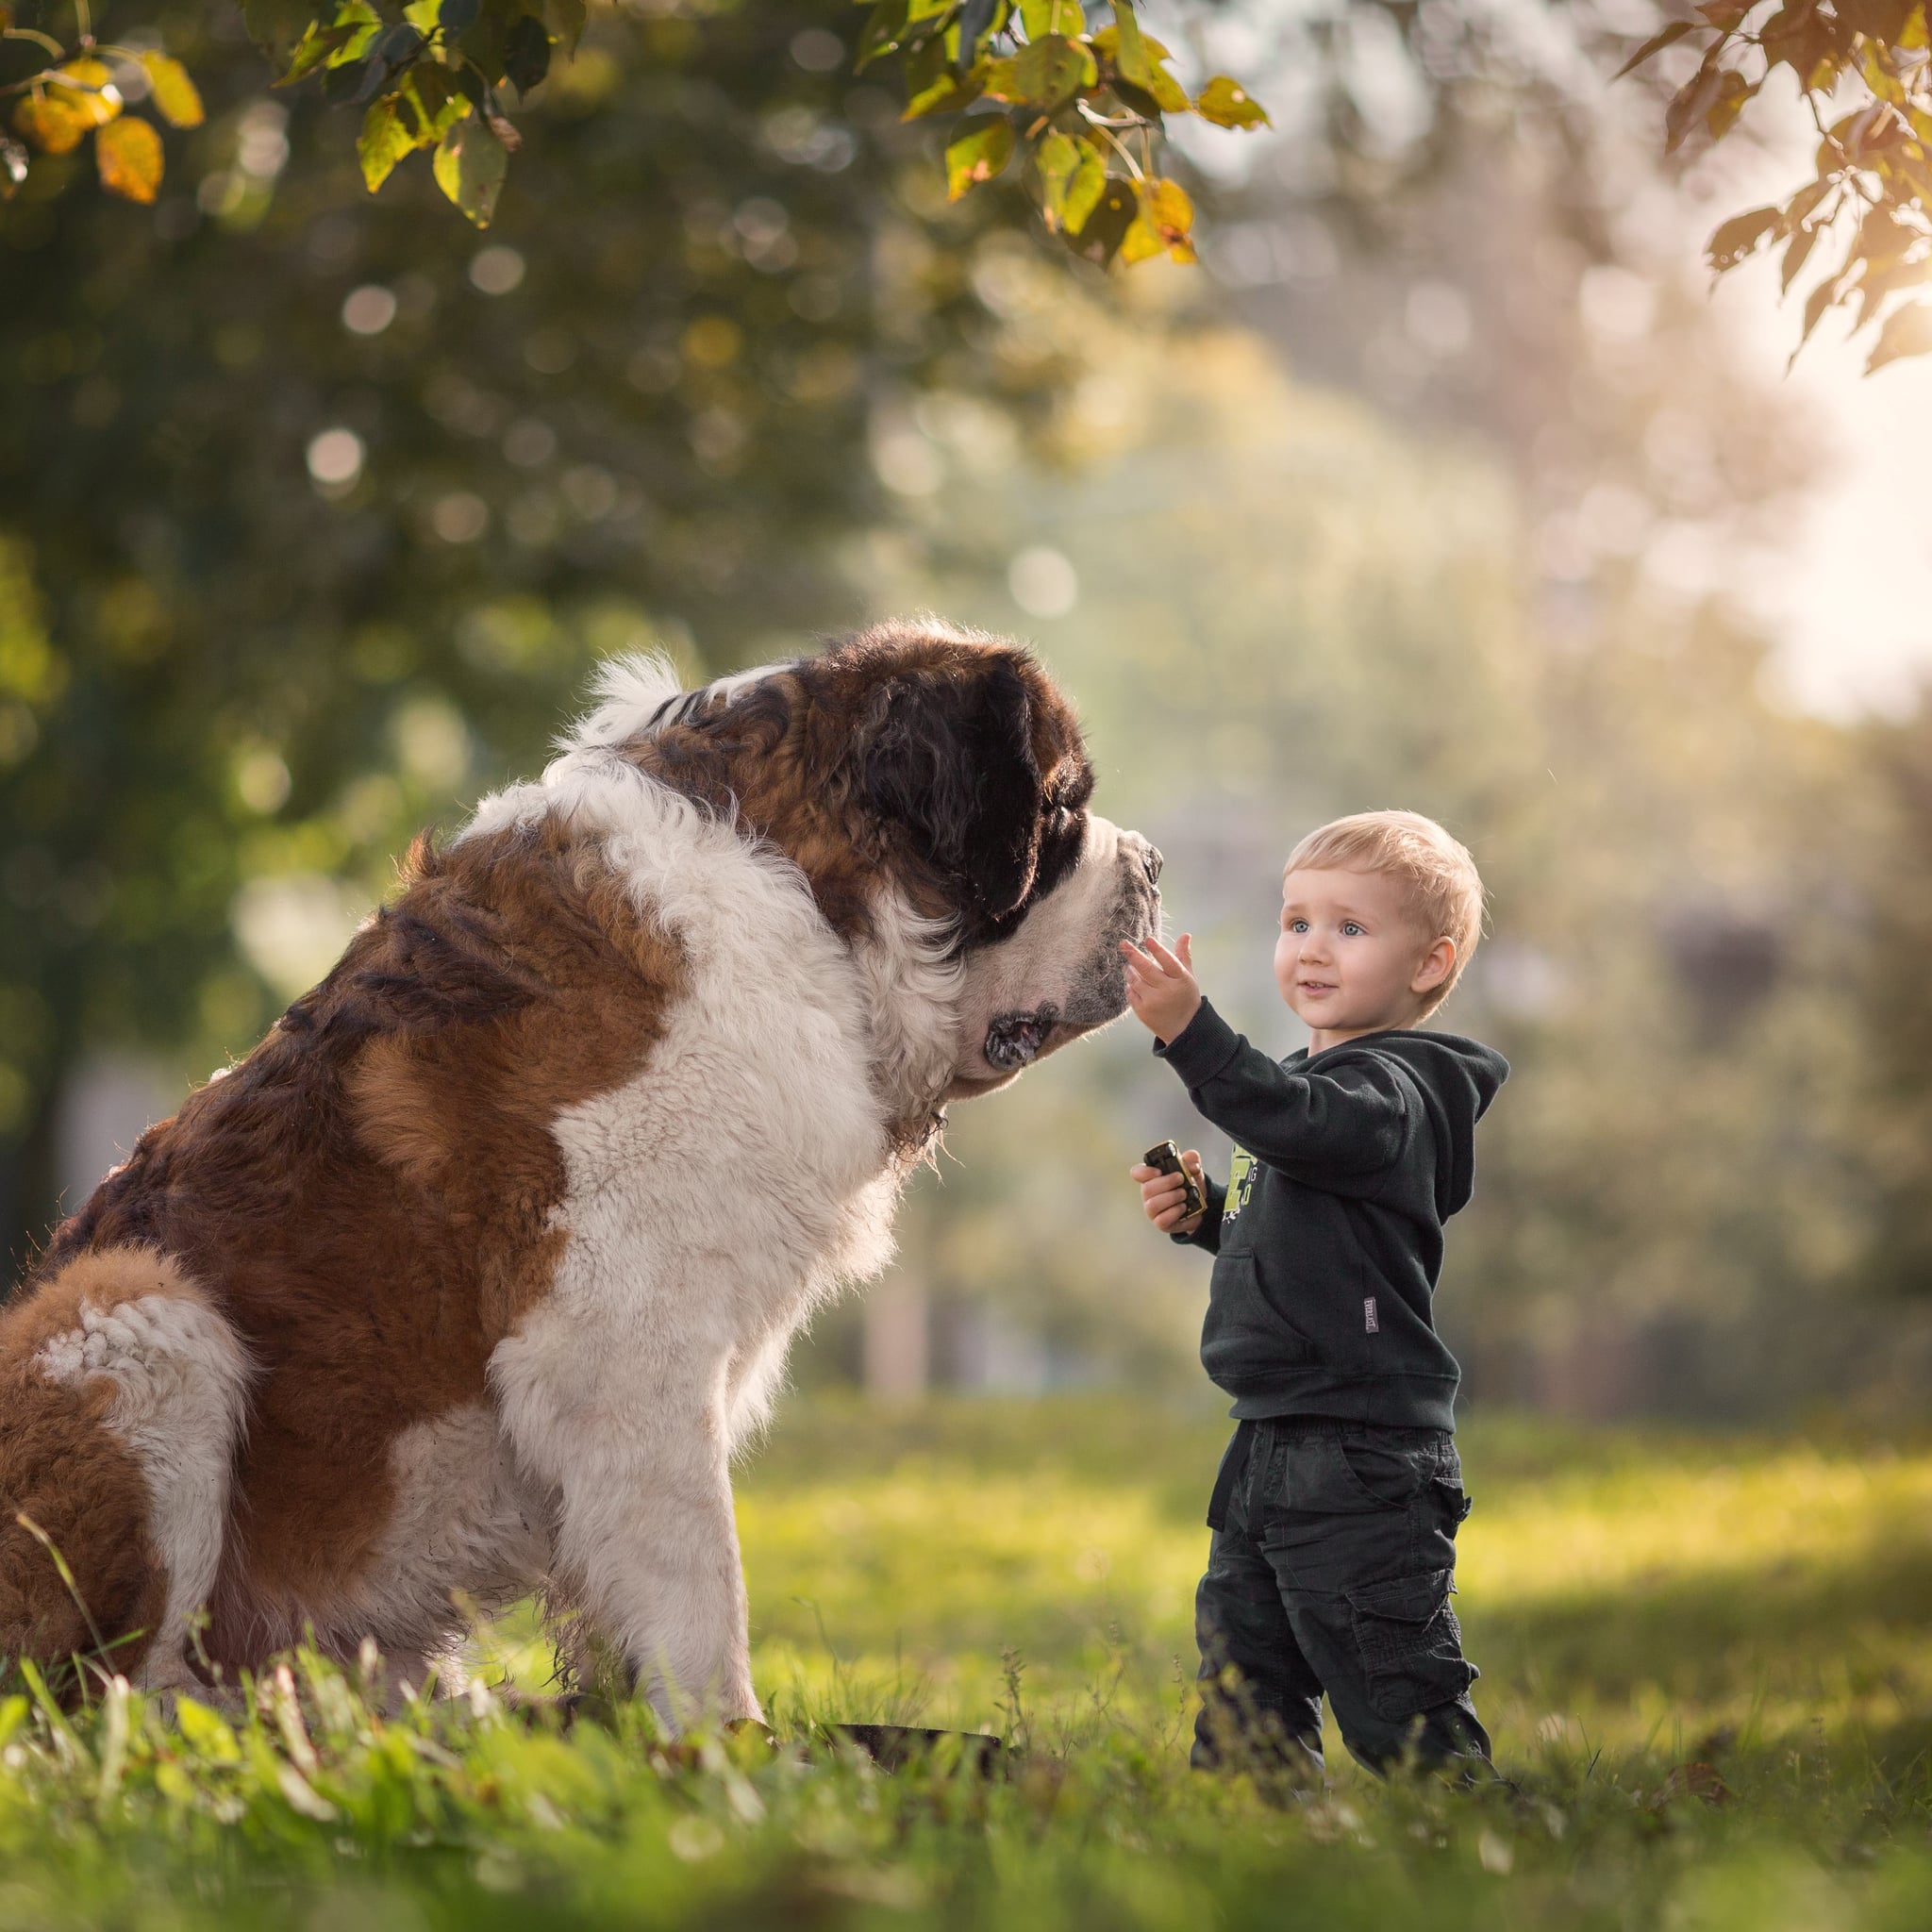 Photo Series on Big Dogs and Little Kids | POPSUGAR Family